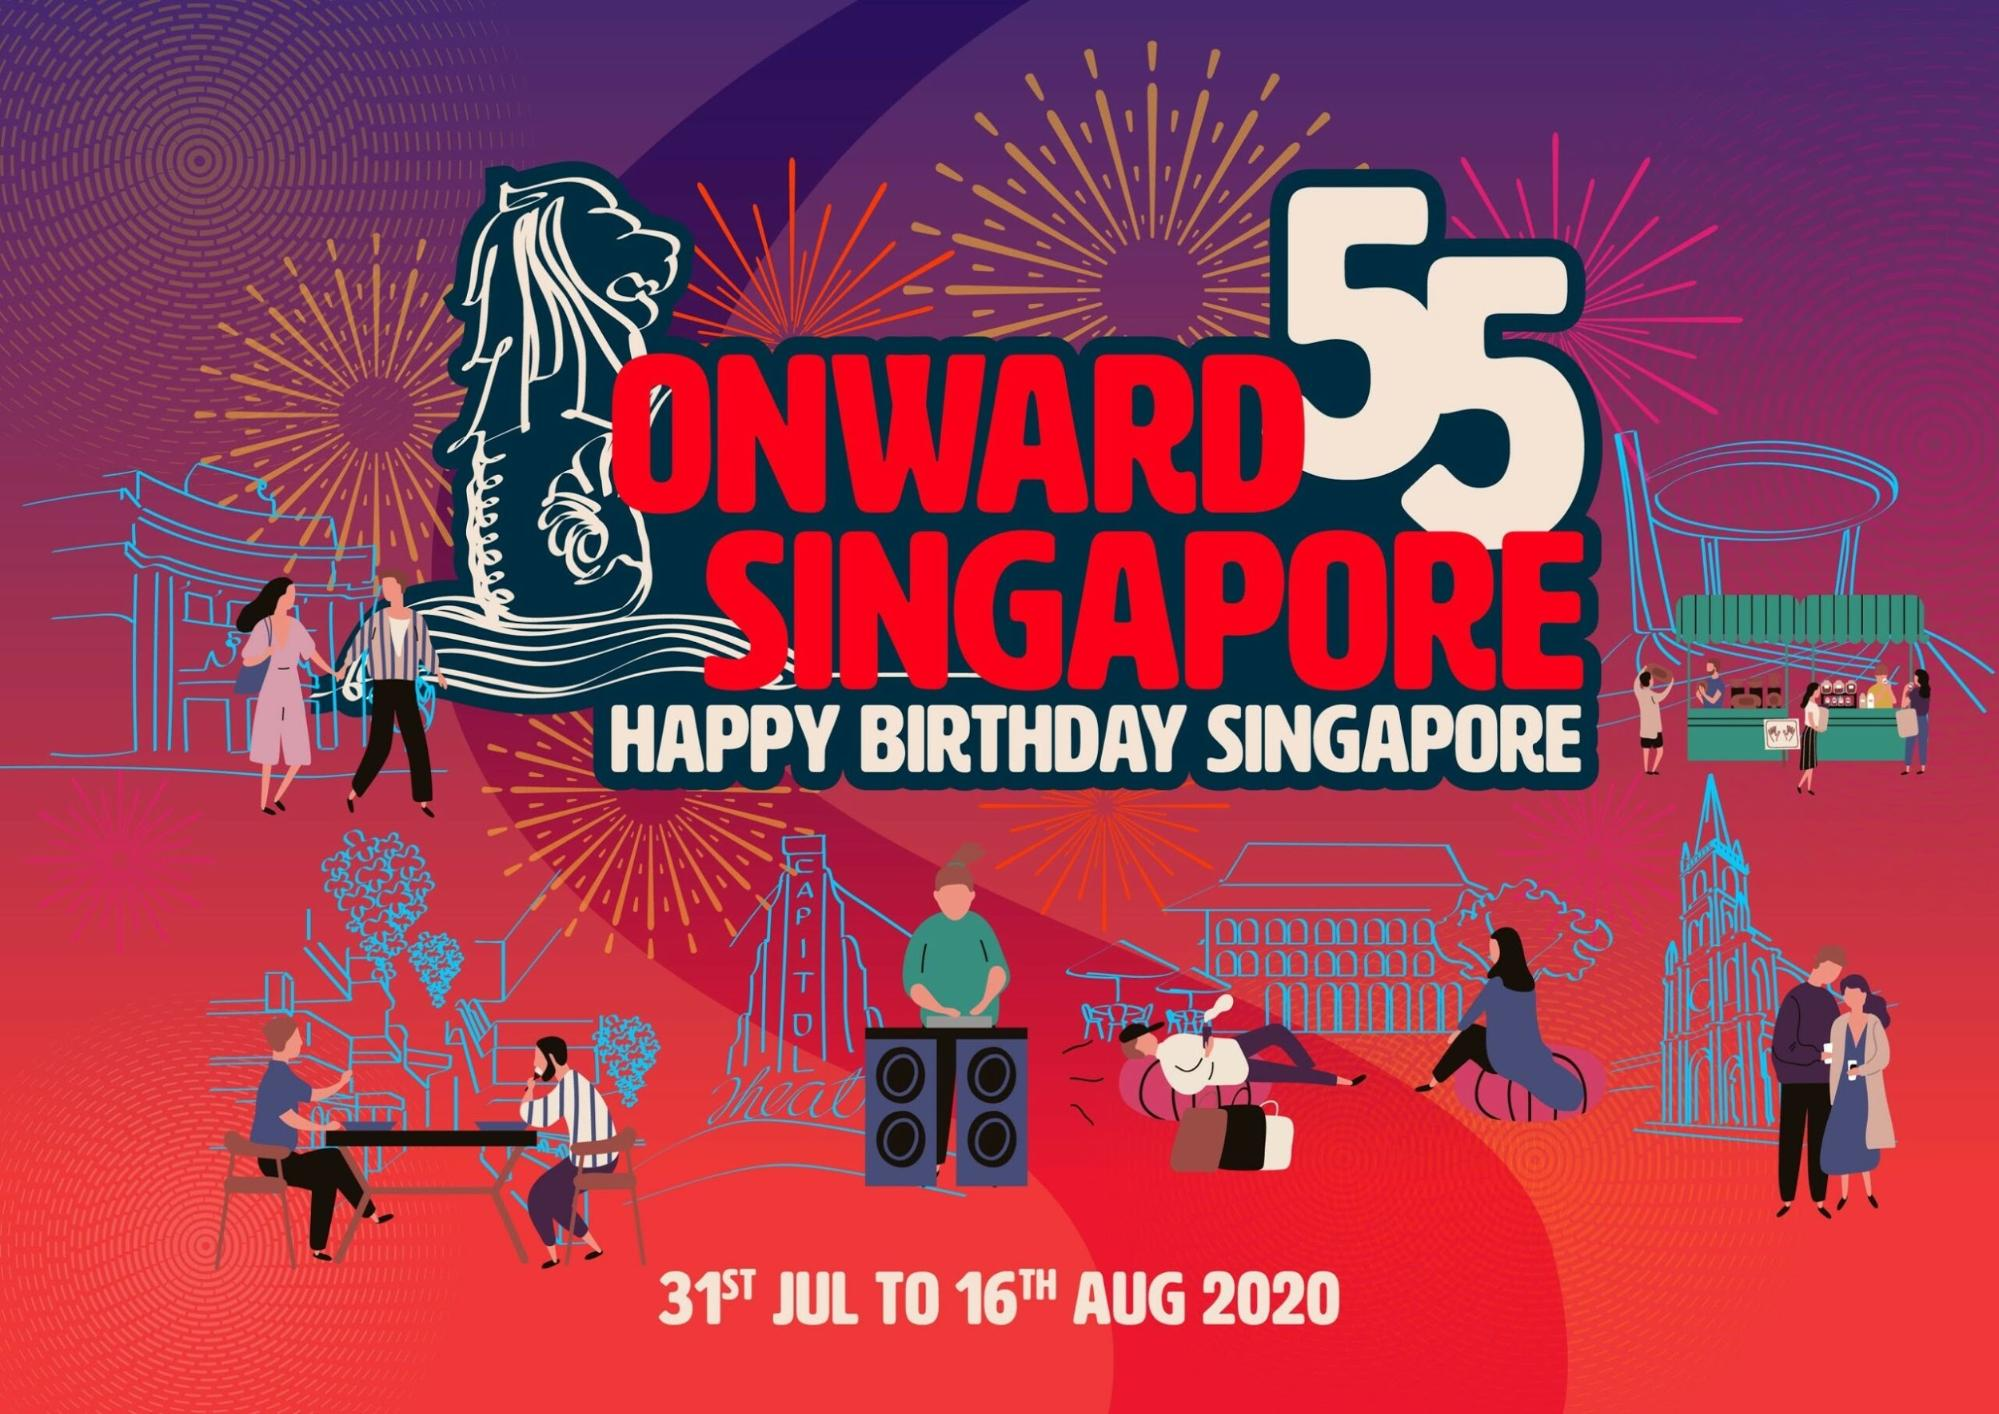 capitol-chijmes-national-day - onward55singapore